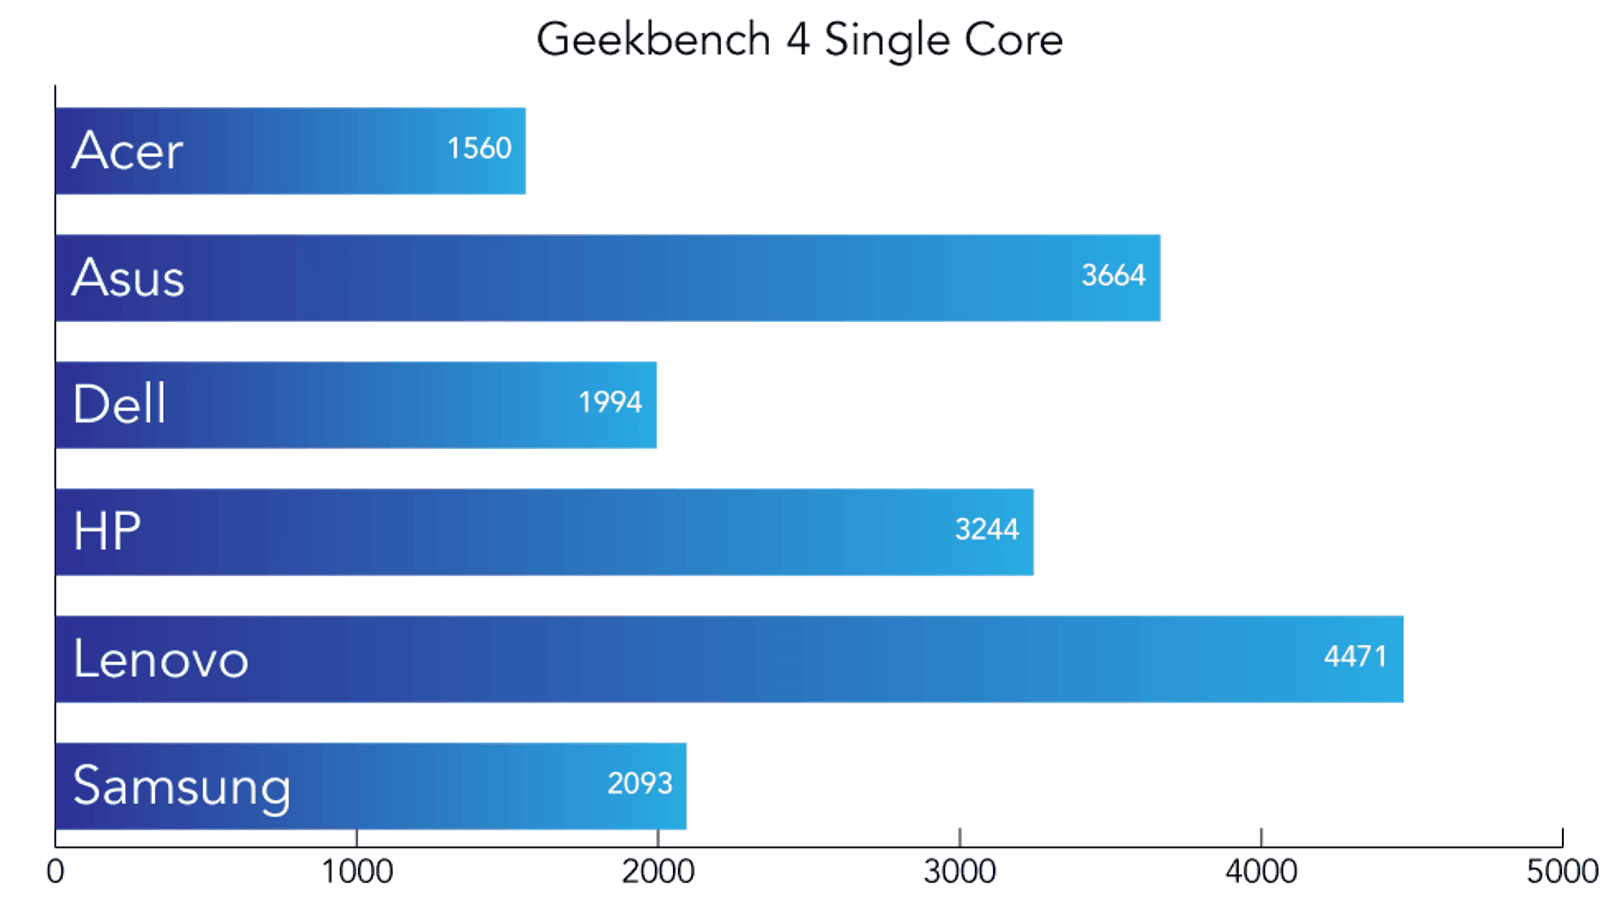 Geekbench 4 is a synthetic benchmark designed to test the CPU, GPU, RAM, and storage speed. The Single Core test focuses on the performance of a single core in a CPU. A higher score is better.